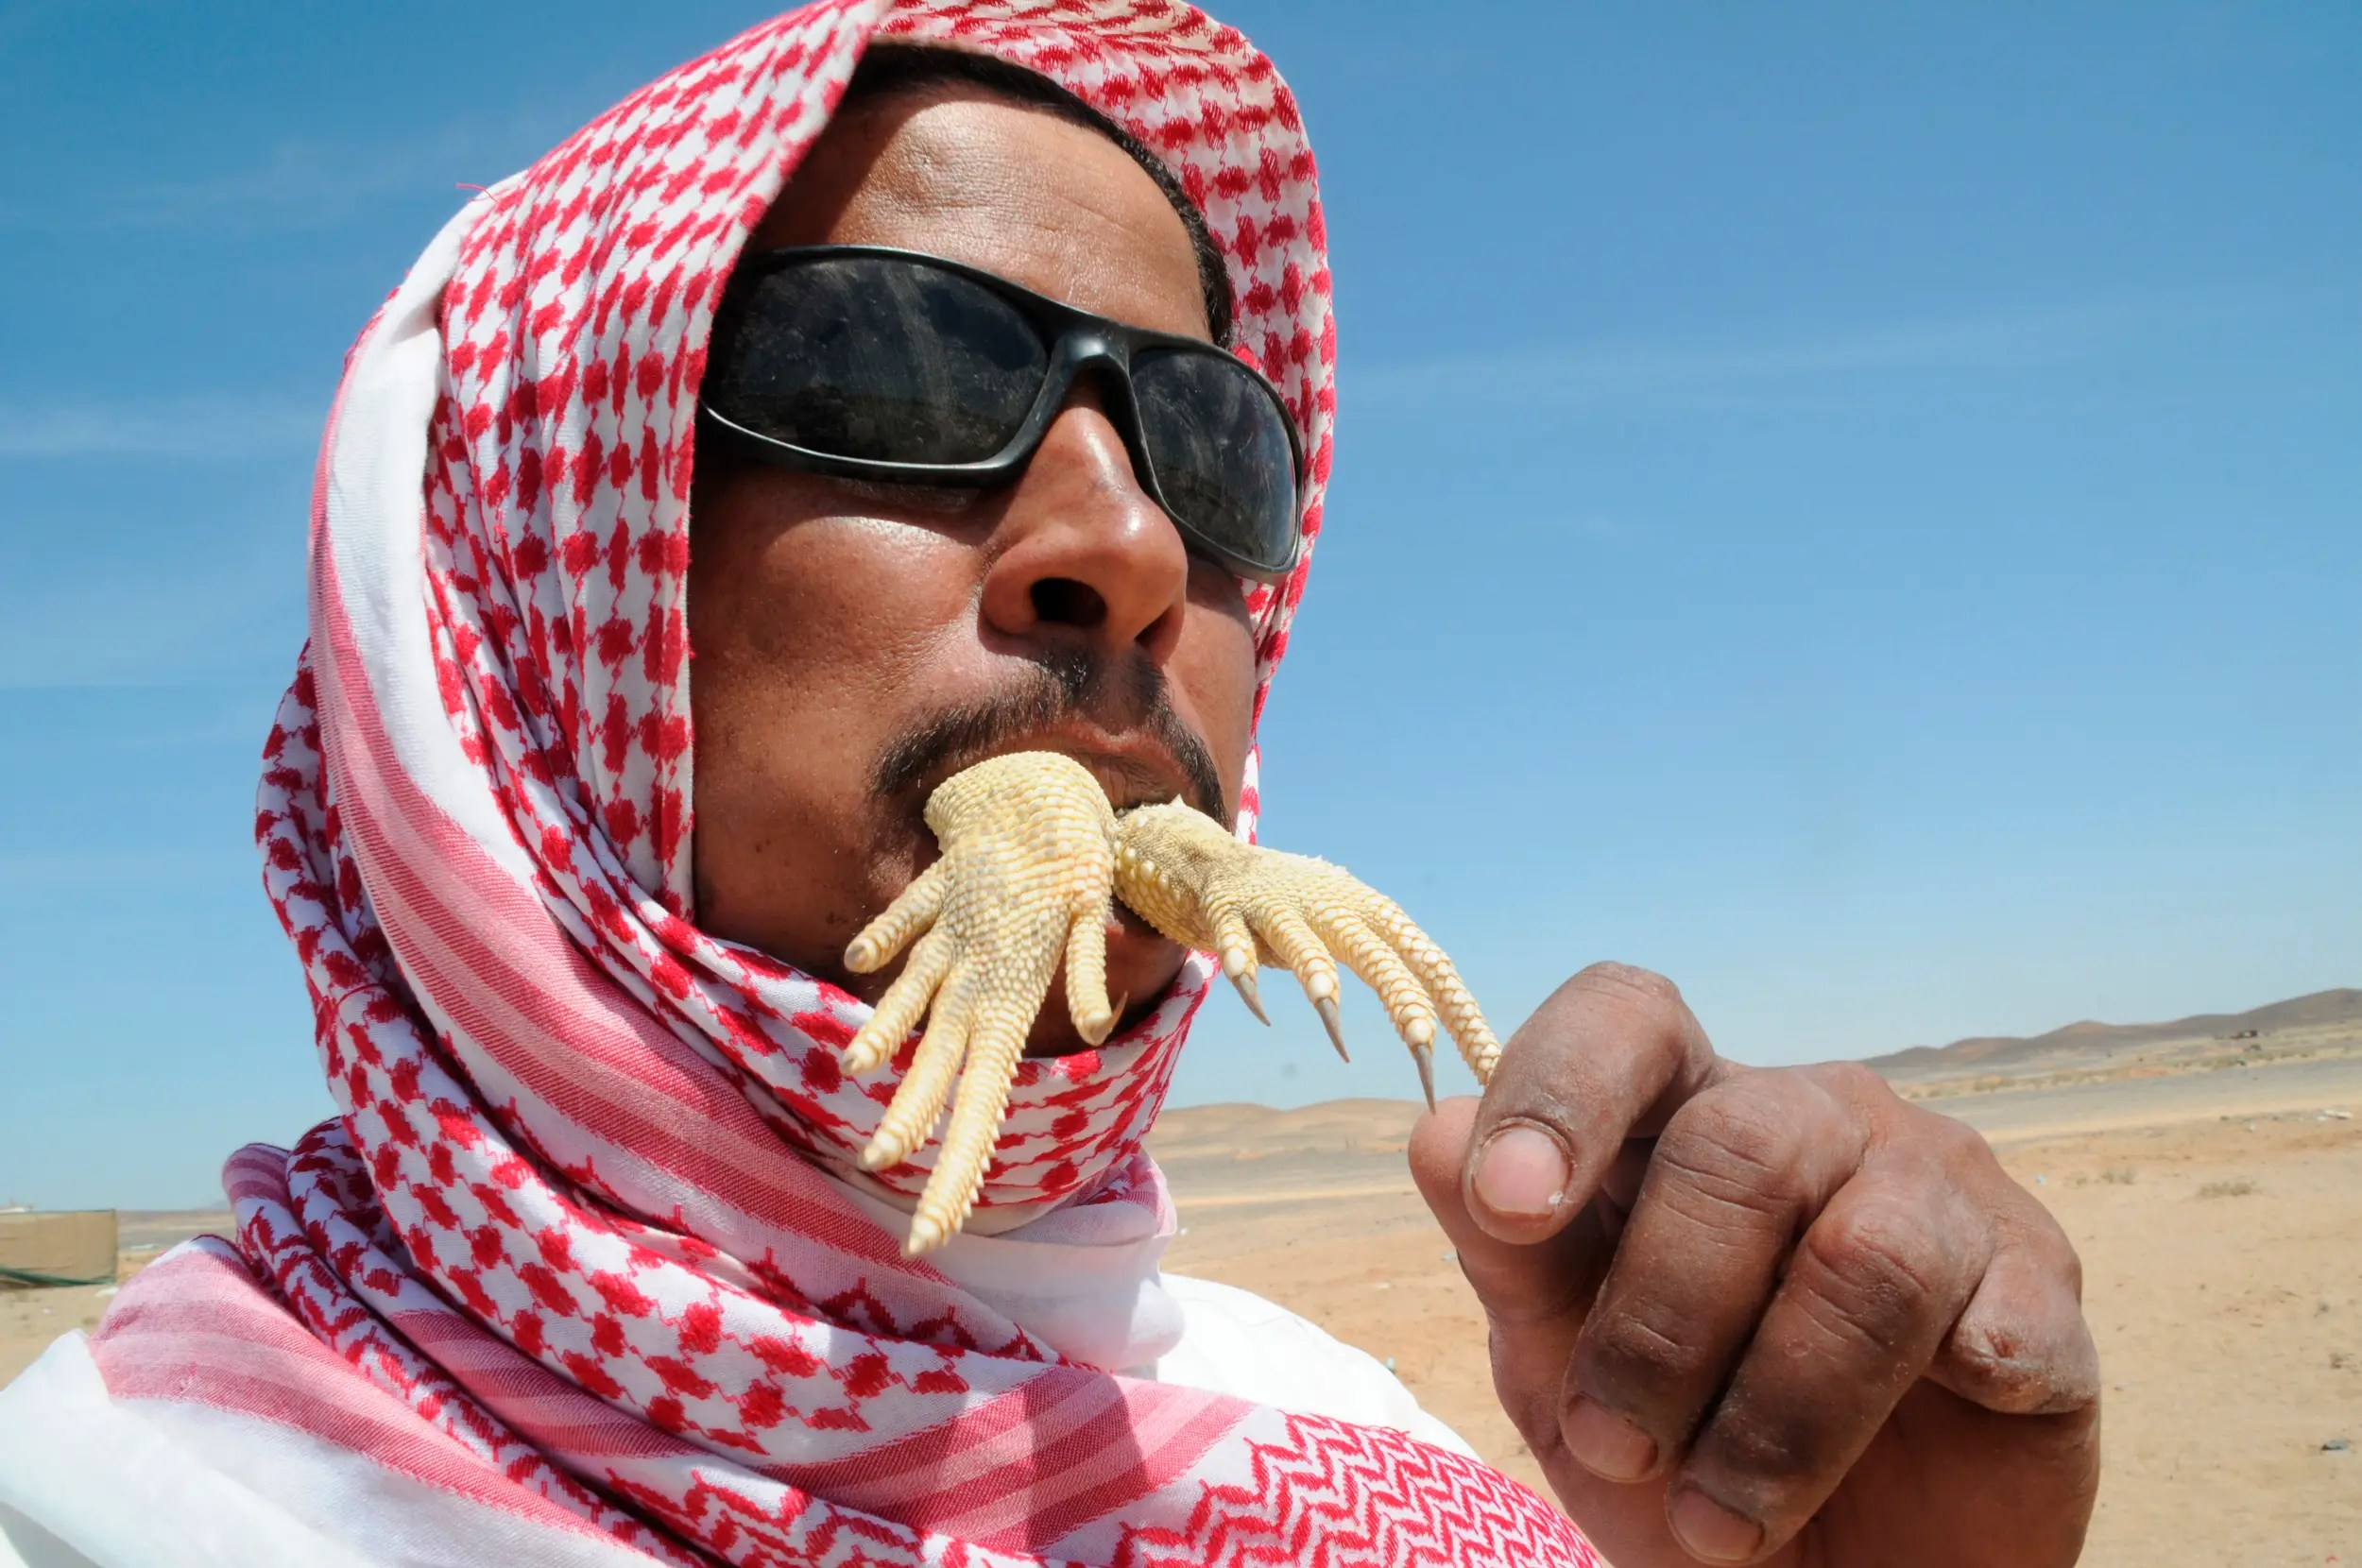 """A Saudi Arabian man crunches on the hands of an Uromastyx lizard, an animal whose blood is believed to treat diseases and strengthen the body. Also known as """"dabb lizards"""", these small reptiles are often caught by hooks or sniffer dogs and are enjoyed as a delicacy in many parts of the Middle East."""